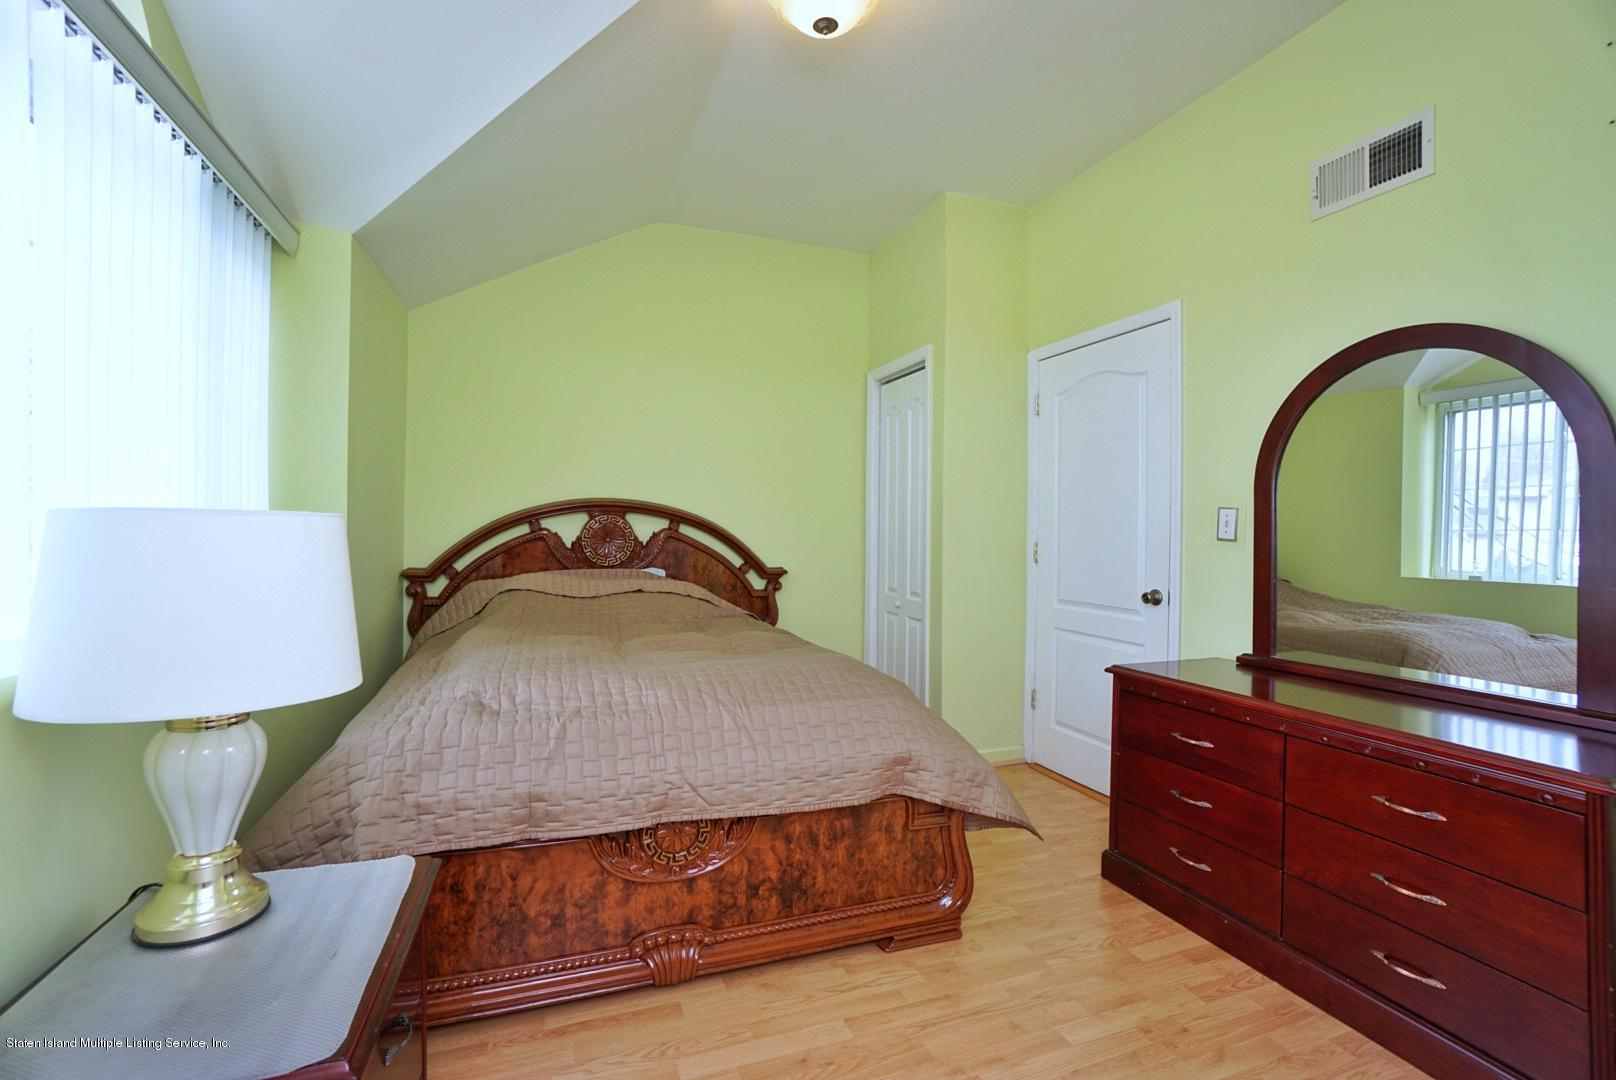 Single Family - Attached 30 Cranberry Court  Staten Island, NY 10309, MLS-1135421-19